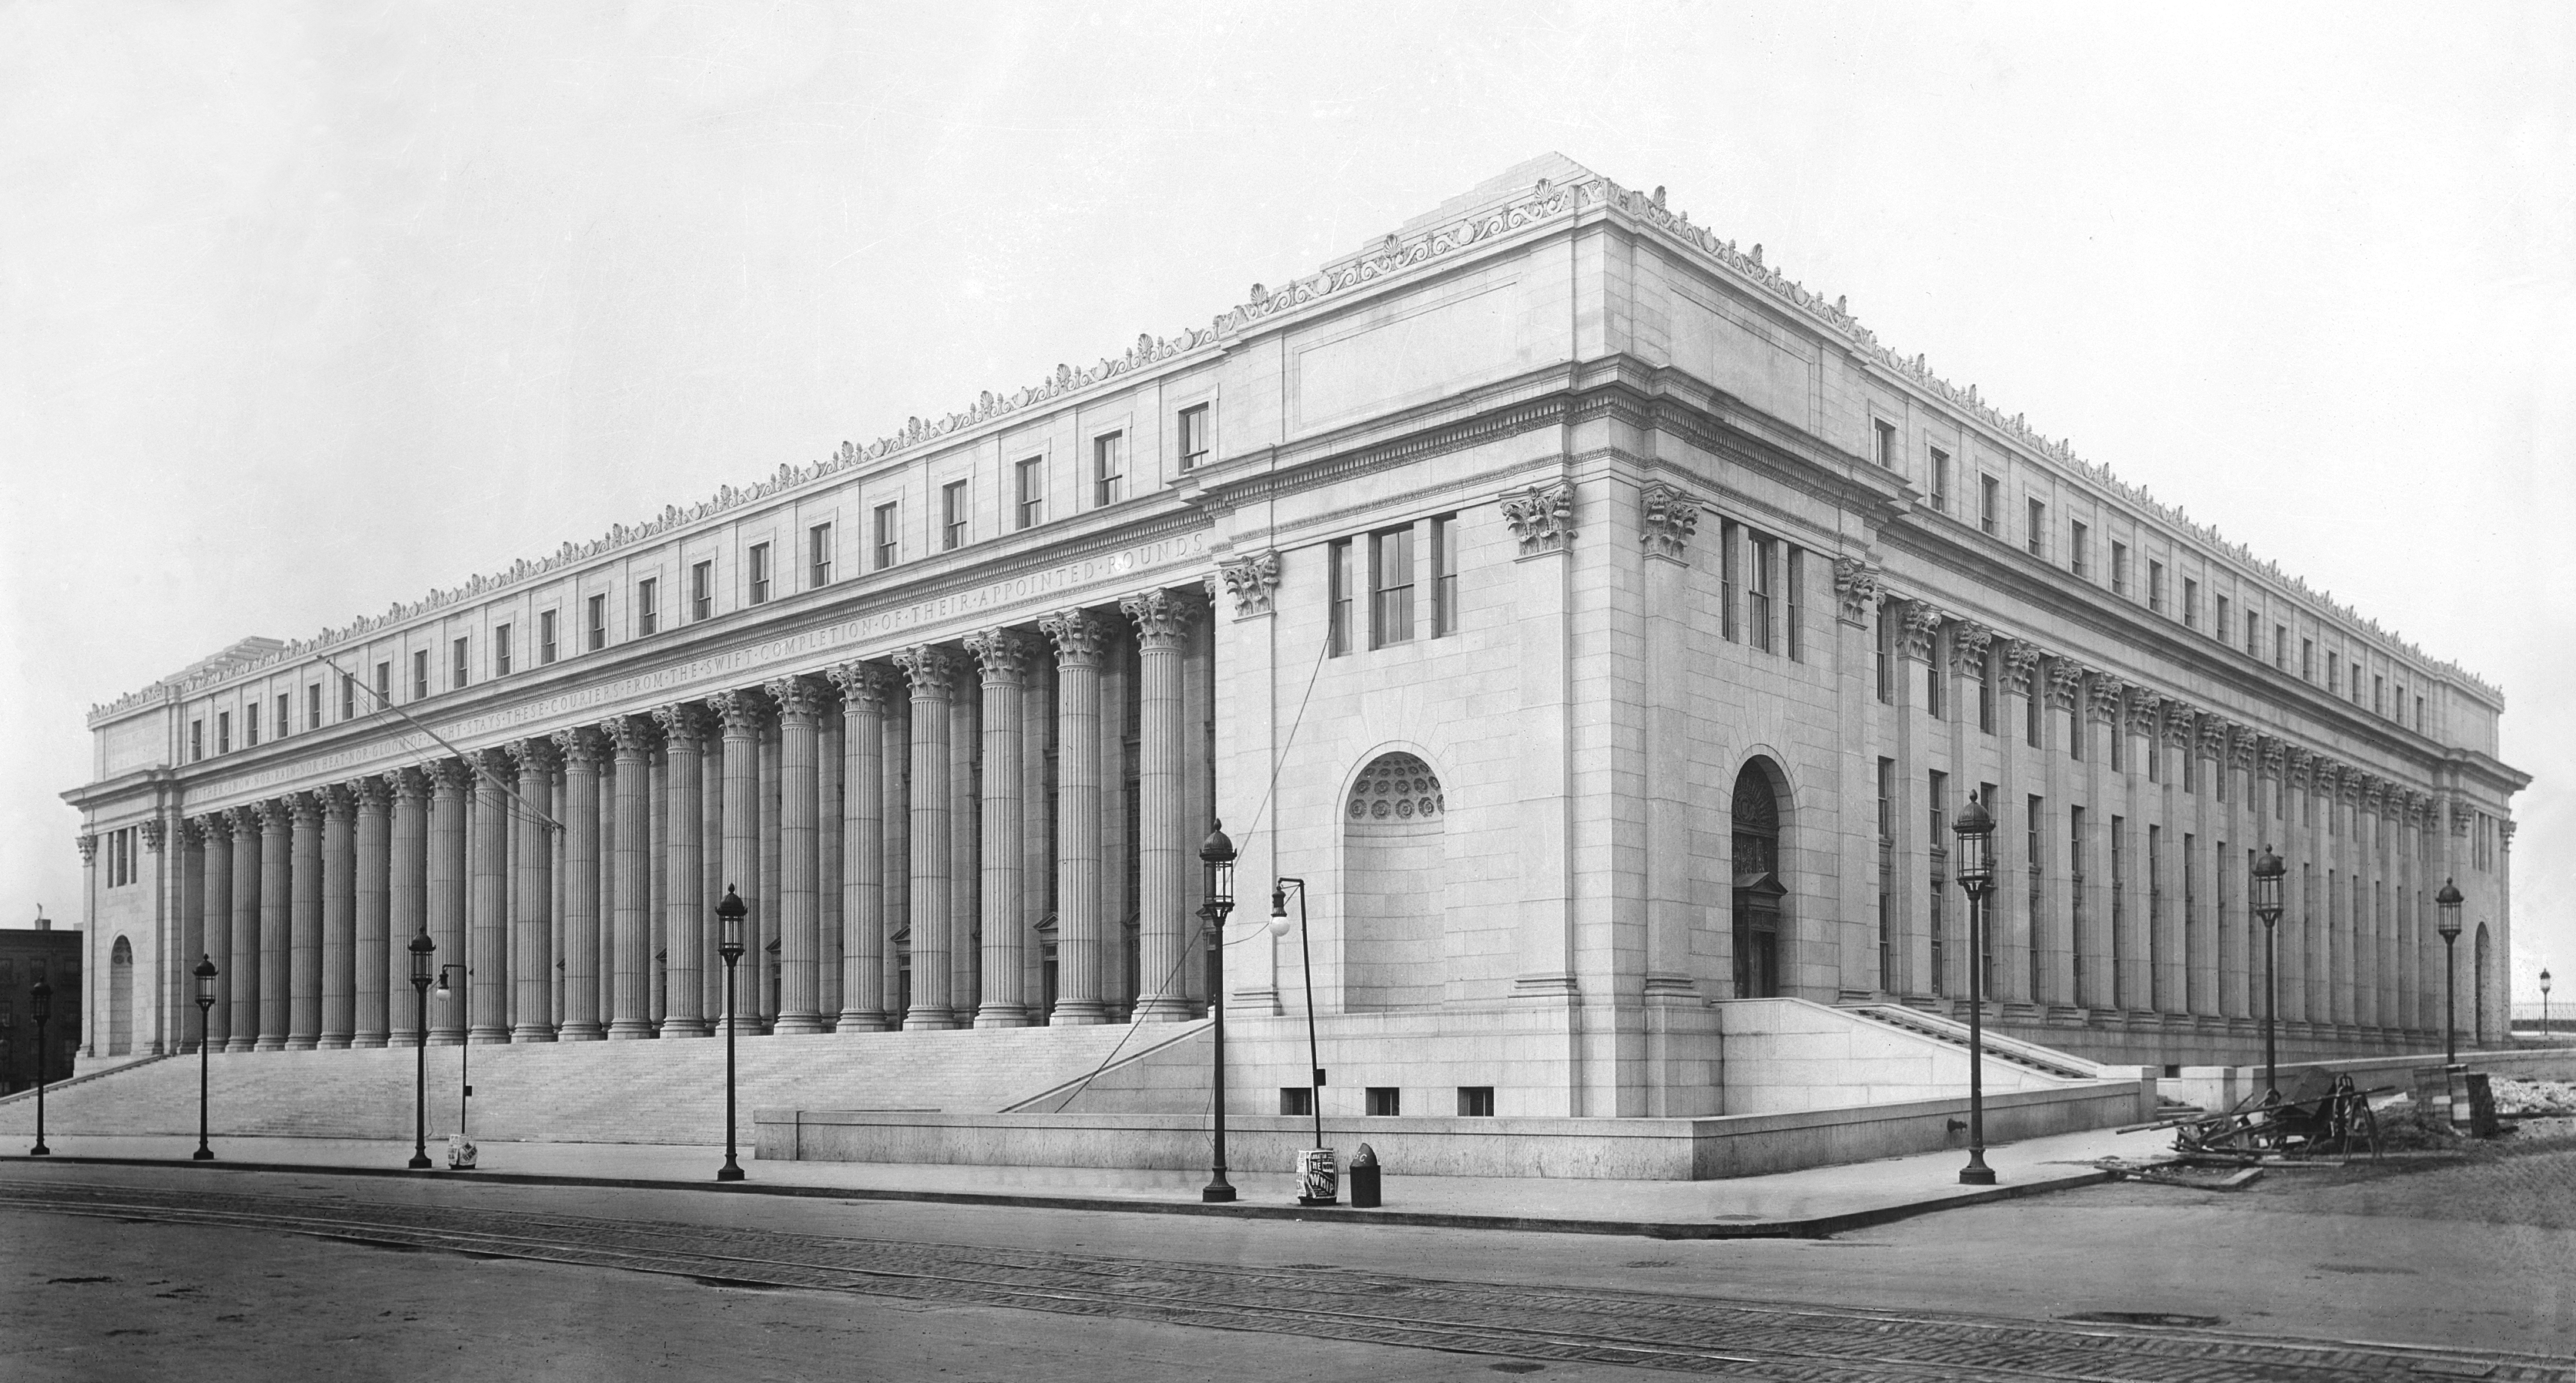 Charming File:James Farley Post Office C1912